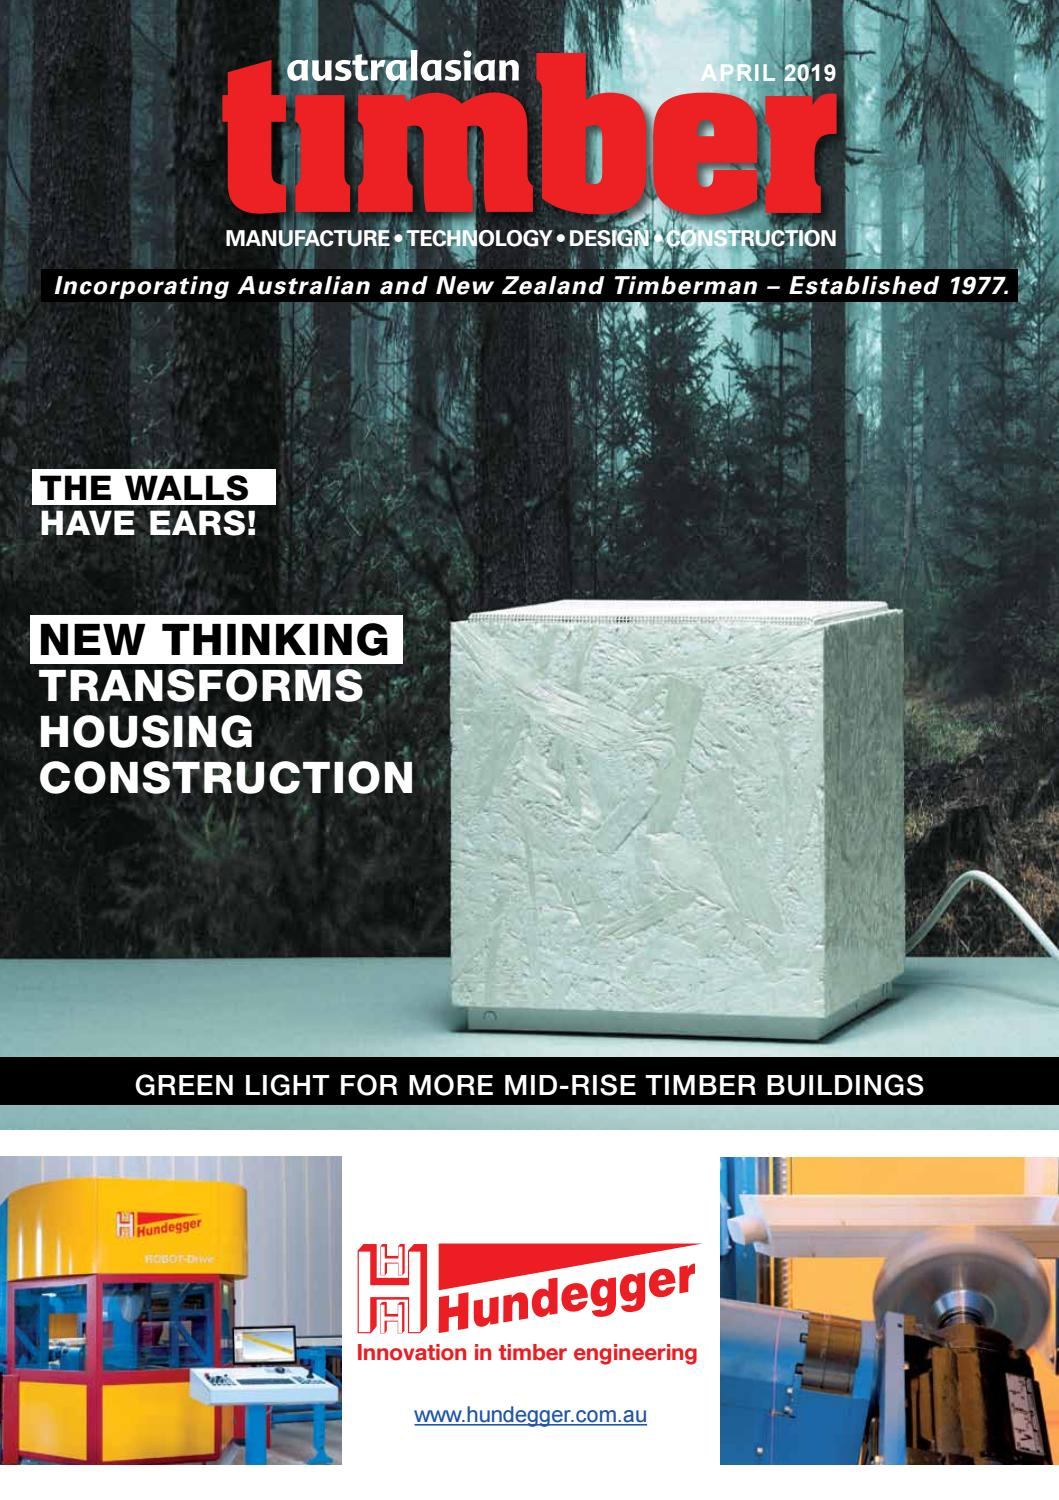 Australasian Timber Magazine - April 2019 by provincial